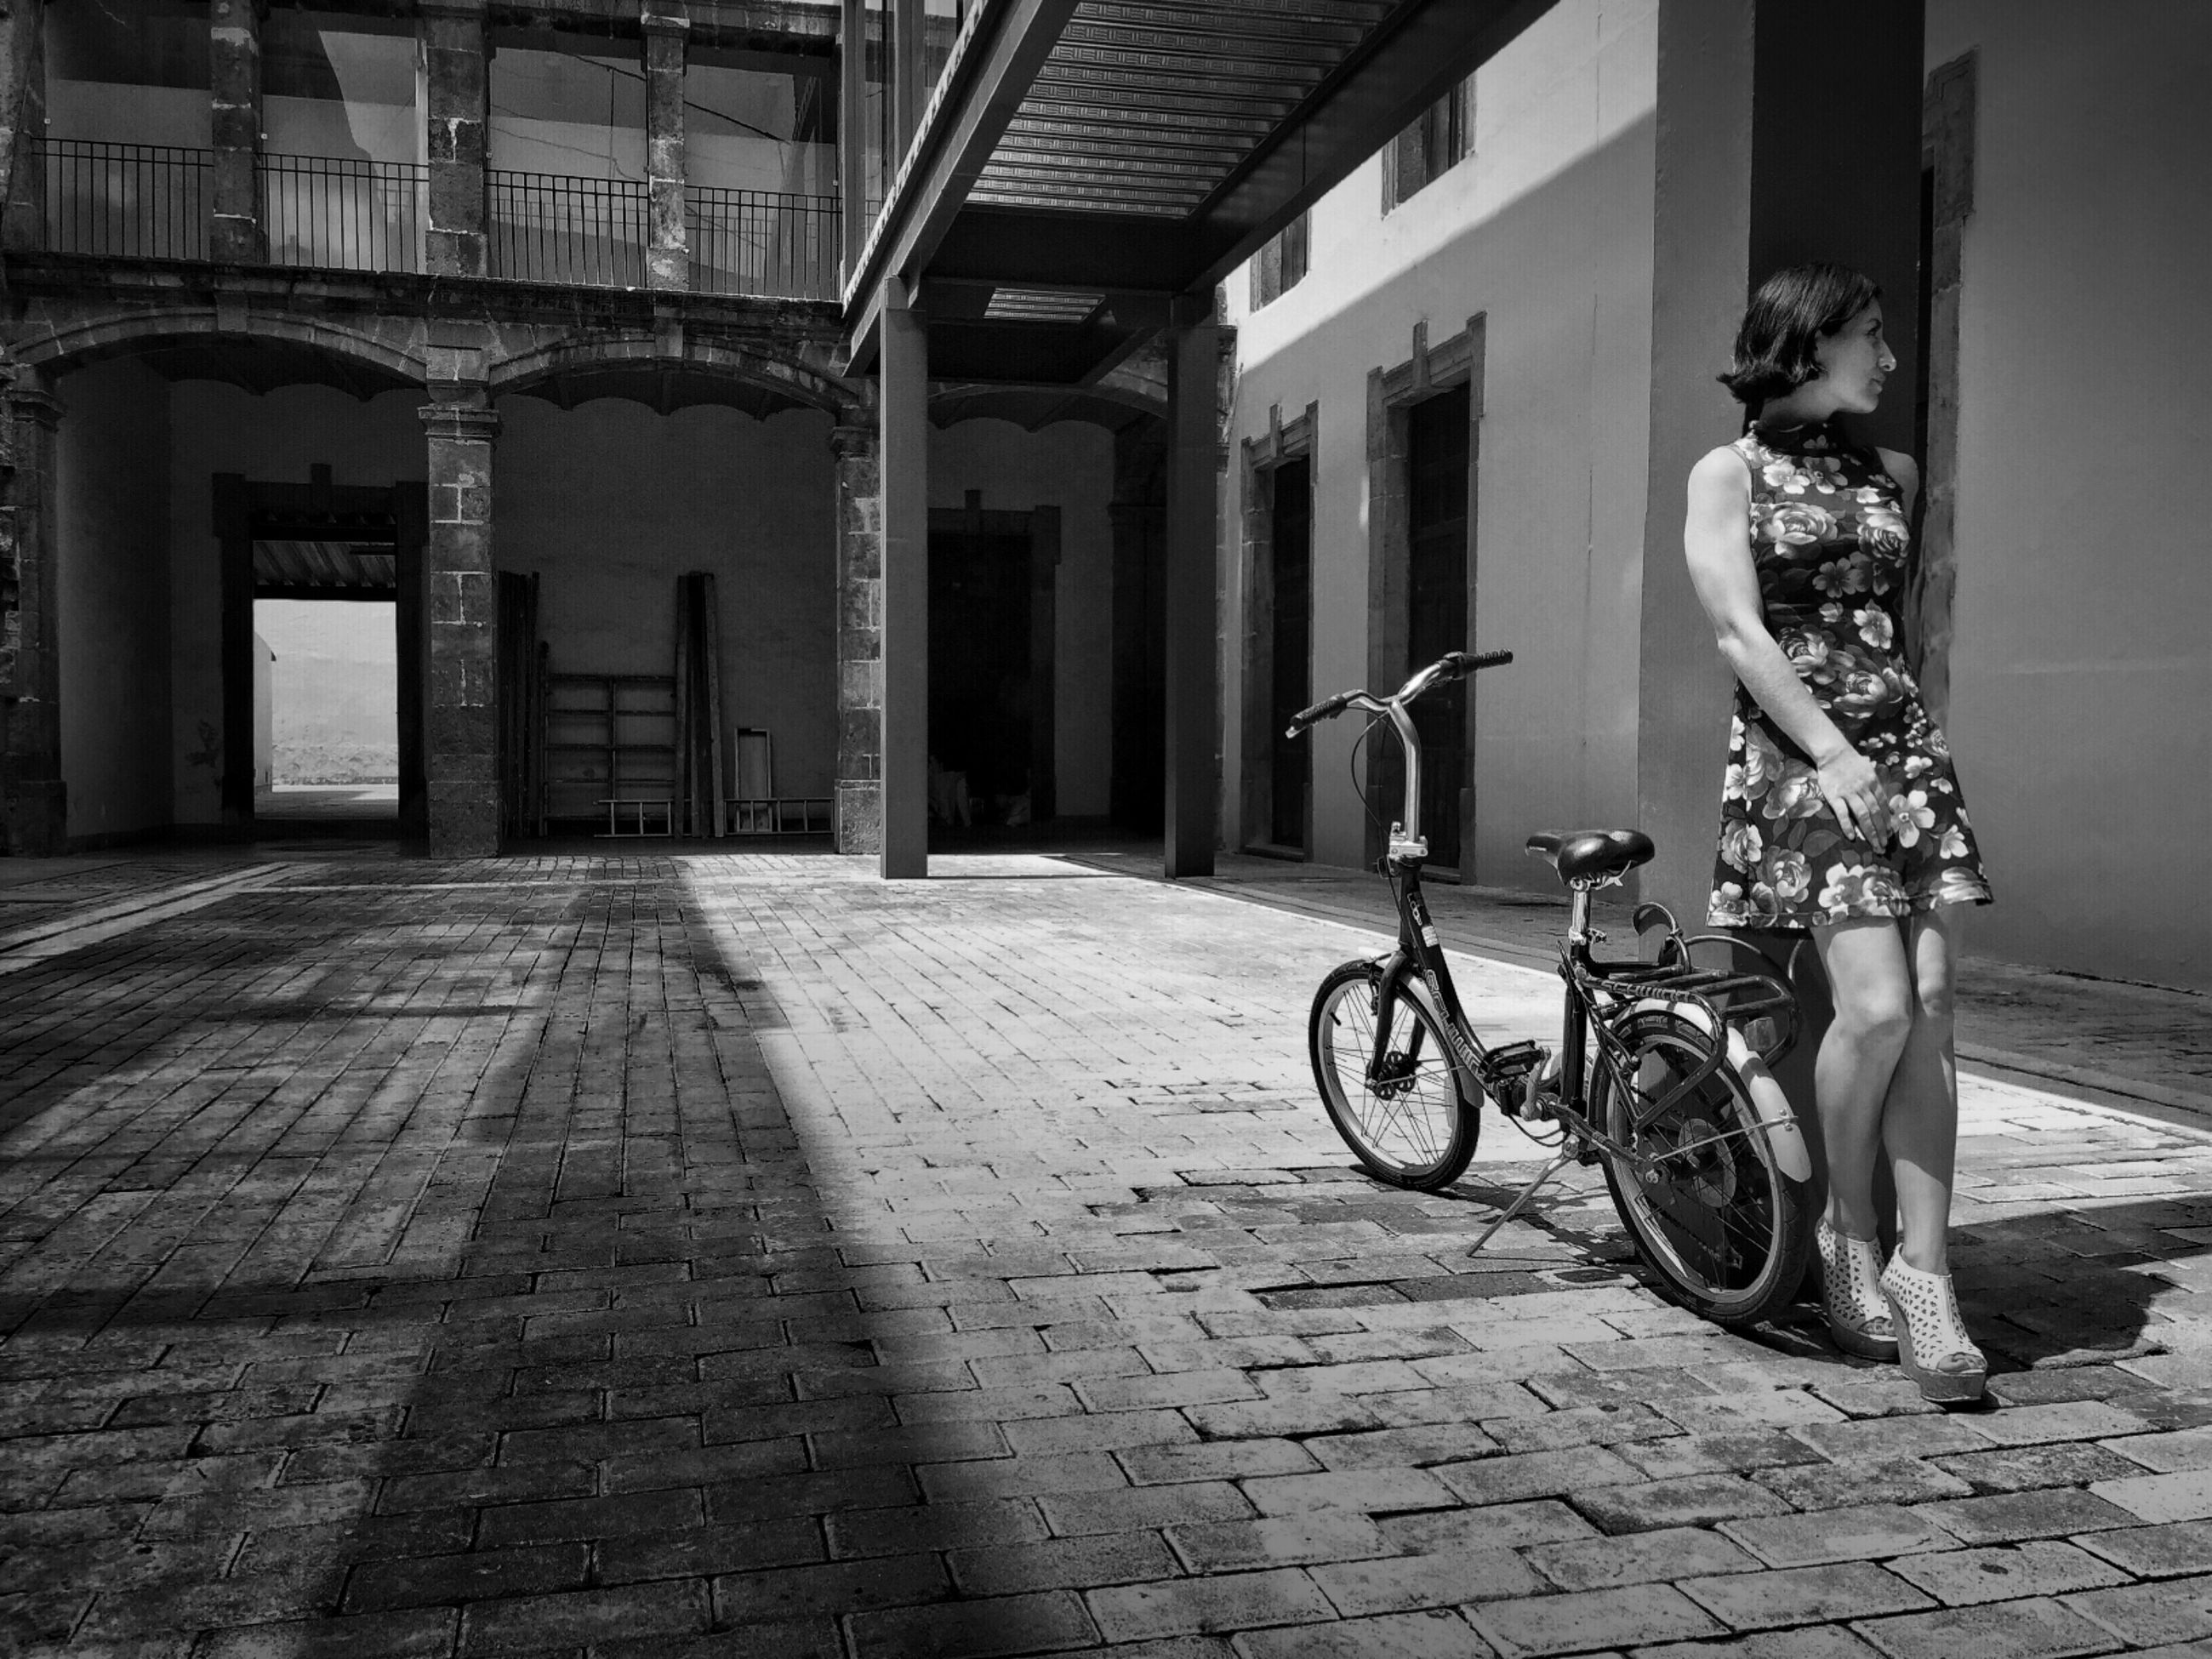 architecture, bicycle, built structure, building exterior, transportation, mode of transport, land vehicle, stationary, parking, parked, street, building, city, cobblestone, window, day, door, travel, sidewalk